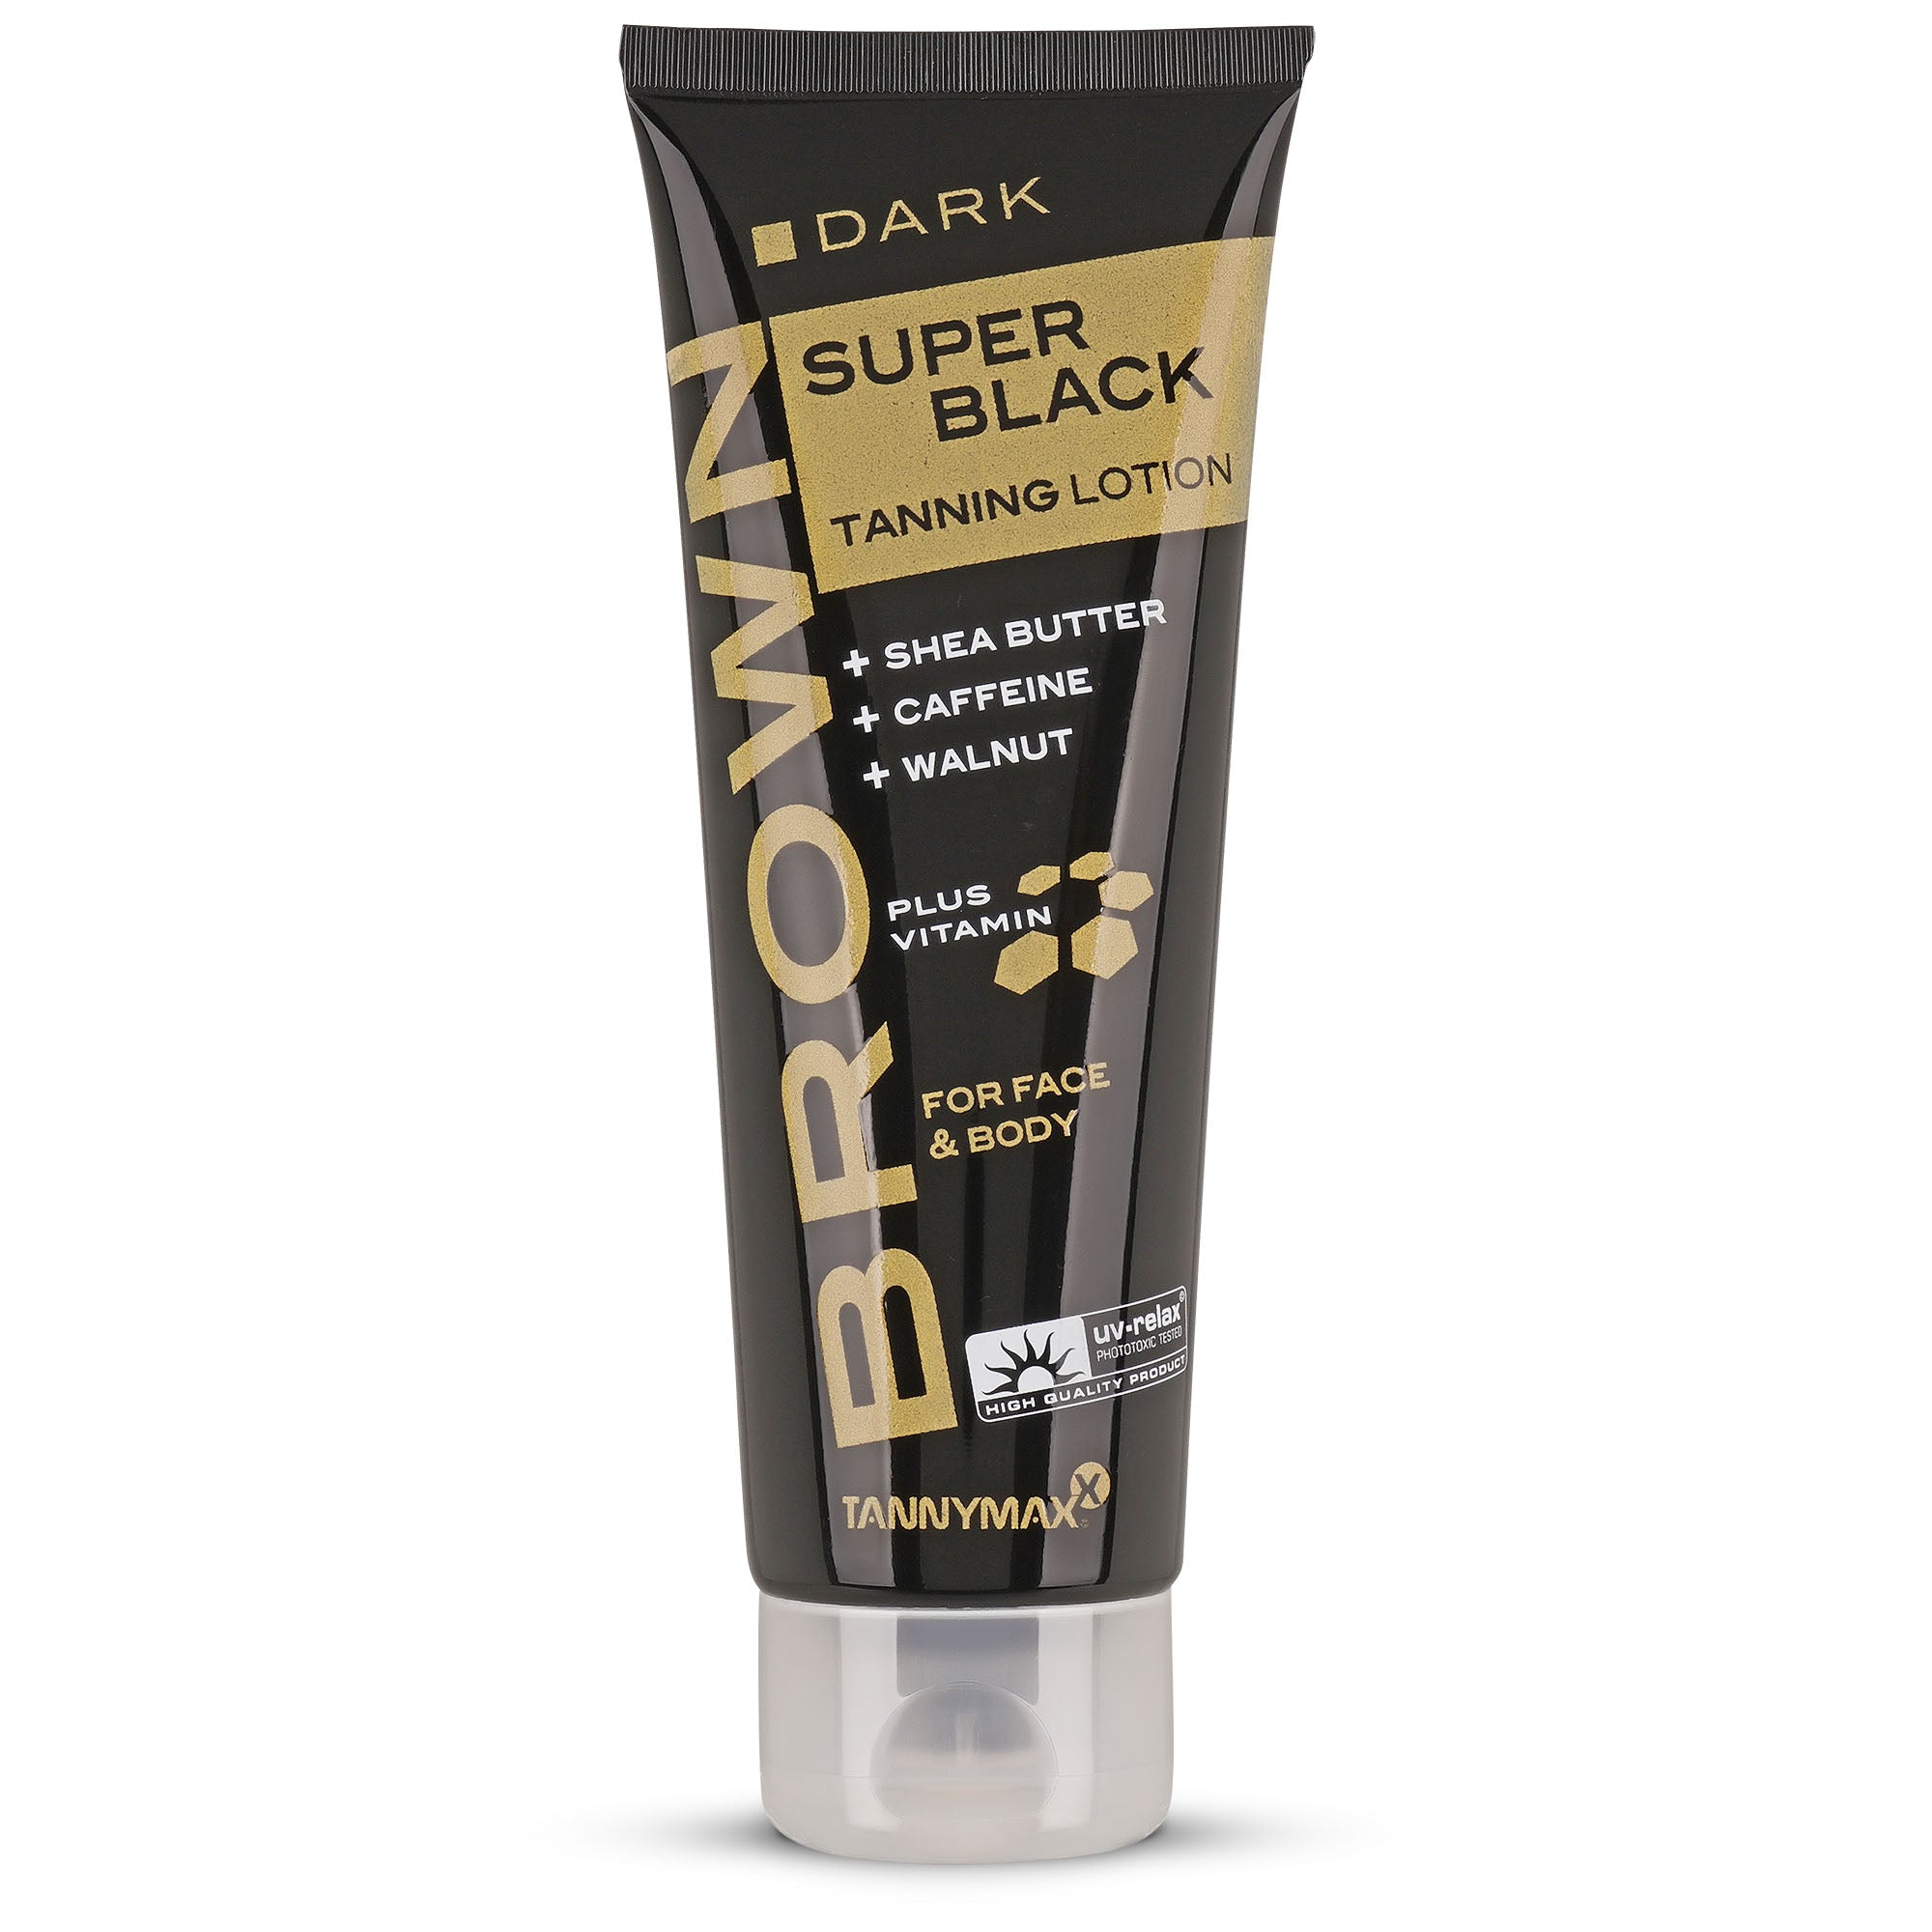 Super Black Tanning Lotion